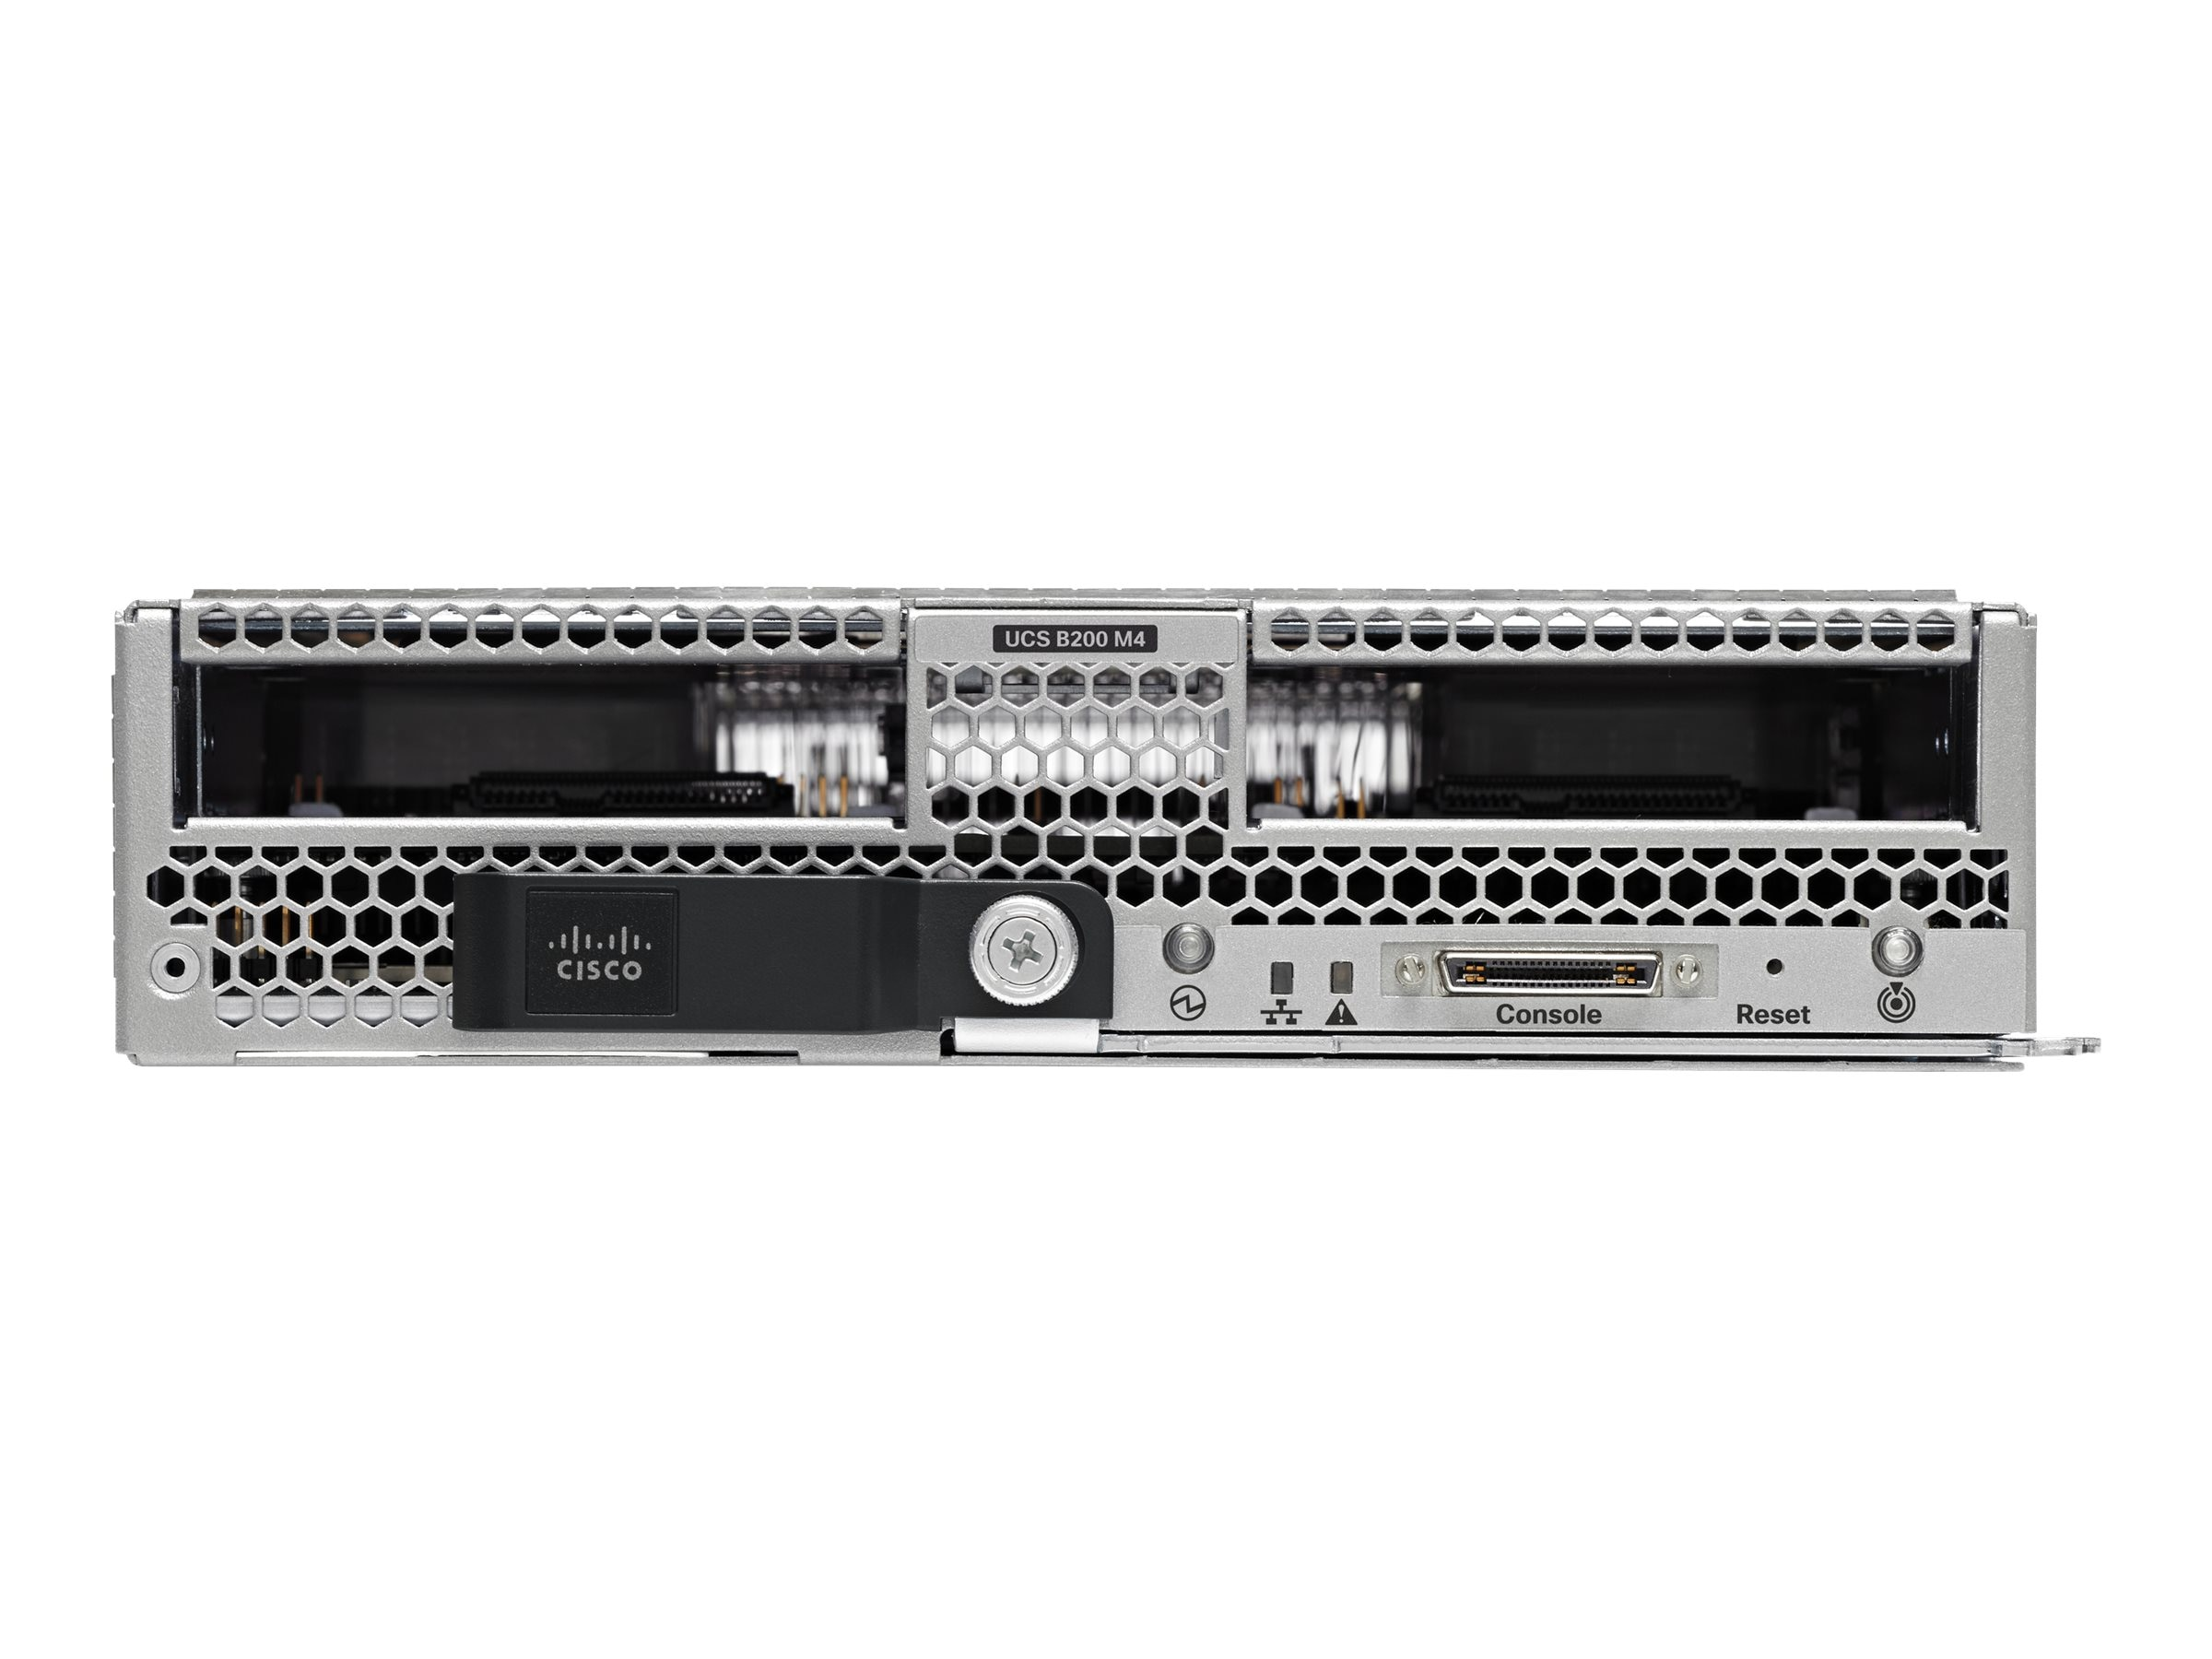 Cisco UCS-SP-B200M4-S1 Image 1